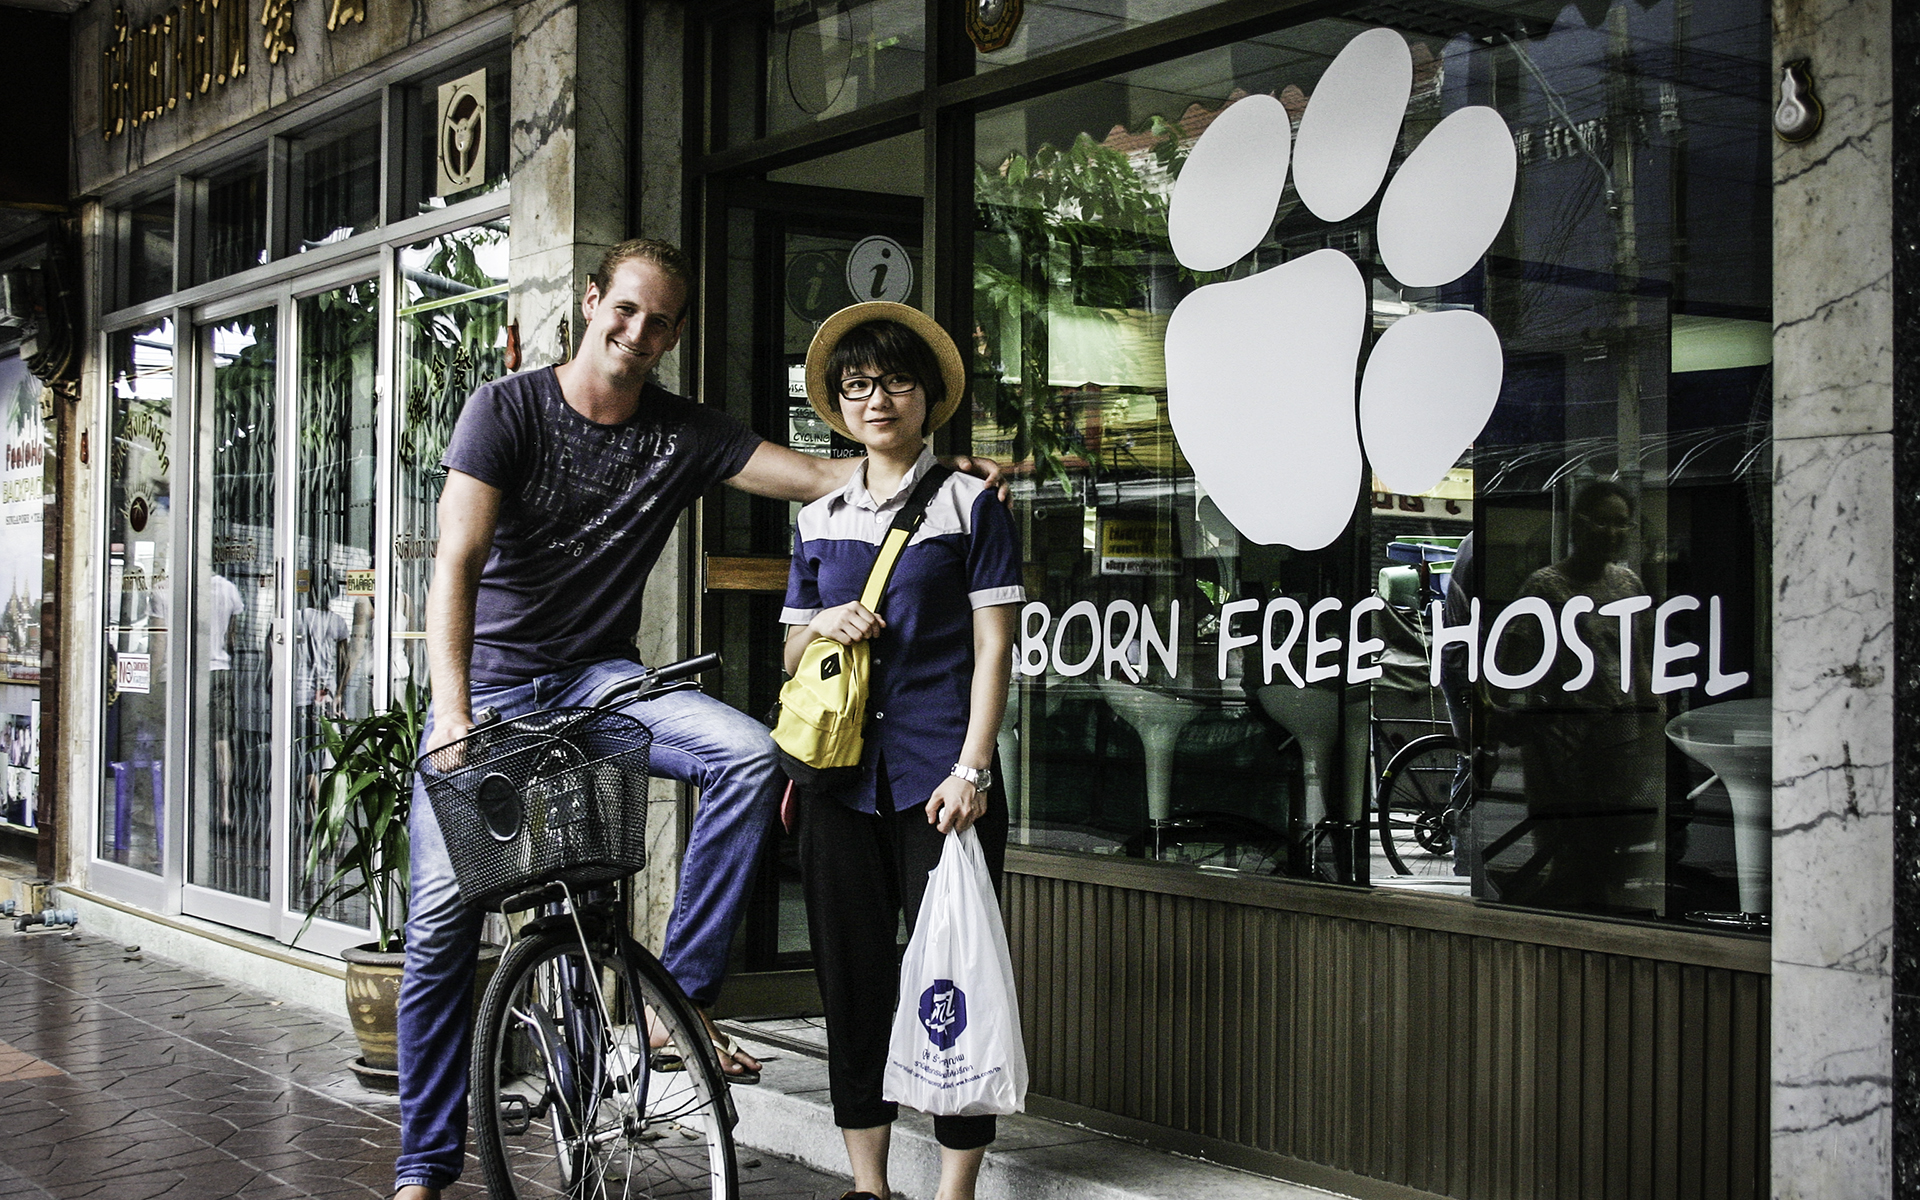 HOSTEL - Born Free Hostel – Vista